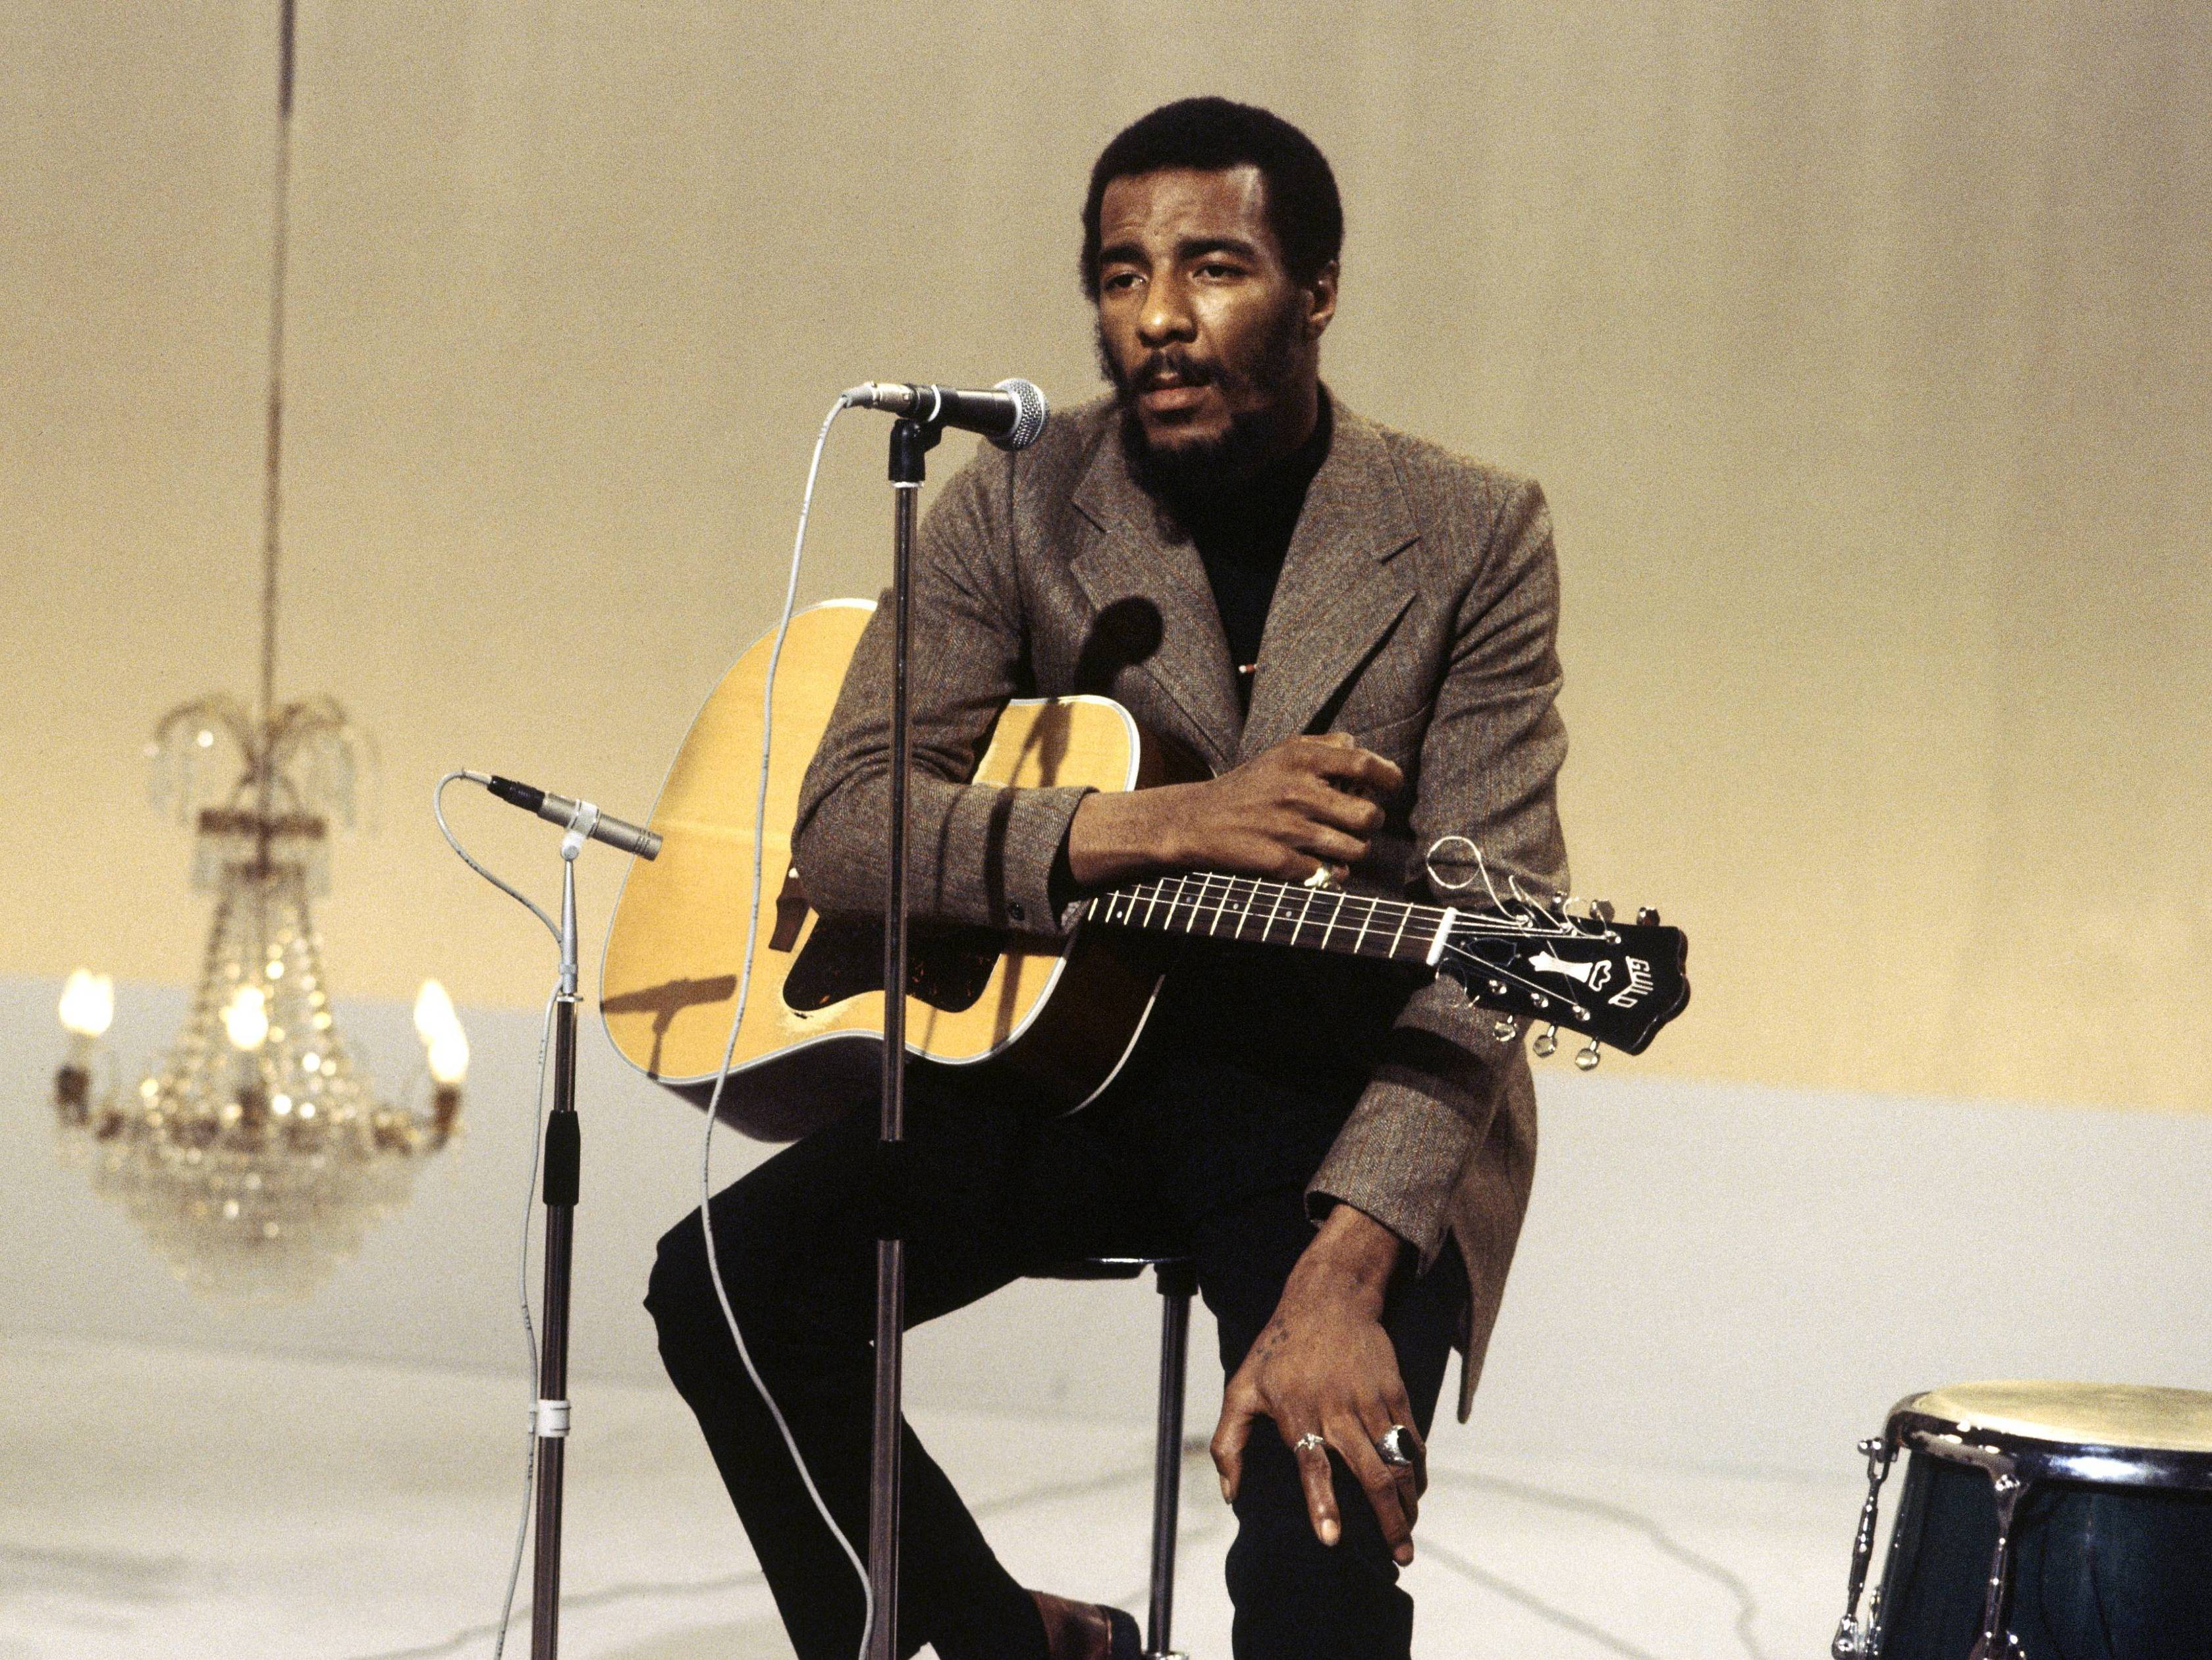 Richie Havens, A Folk Singer Of 'Freedom' : The Record : NPR